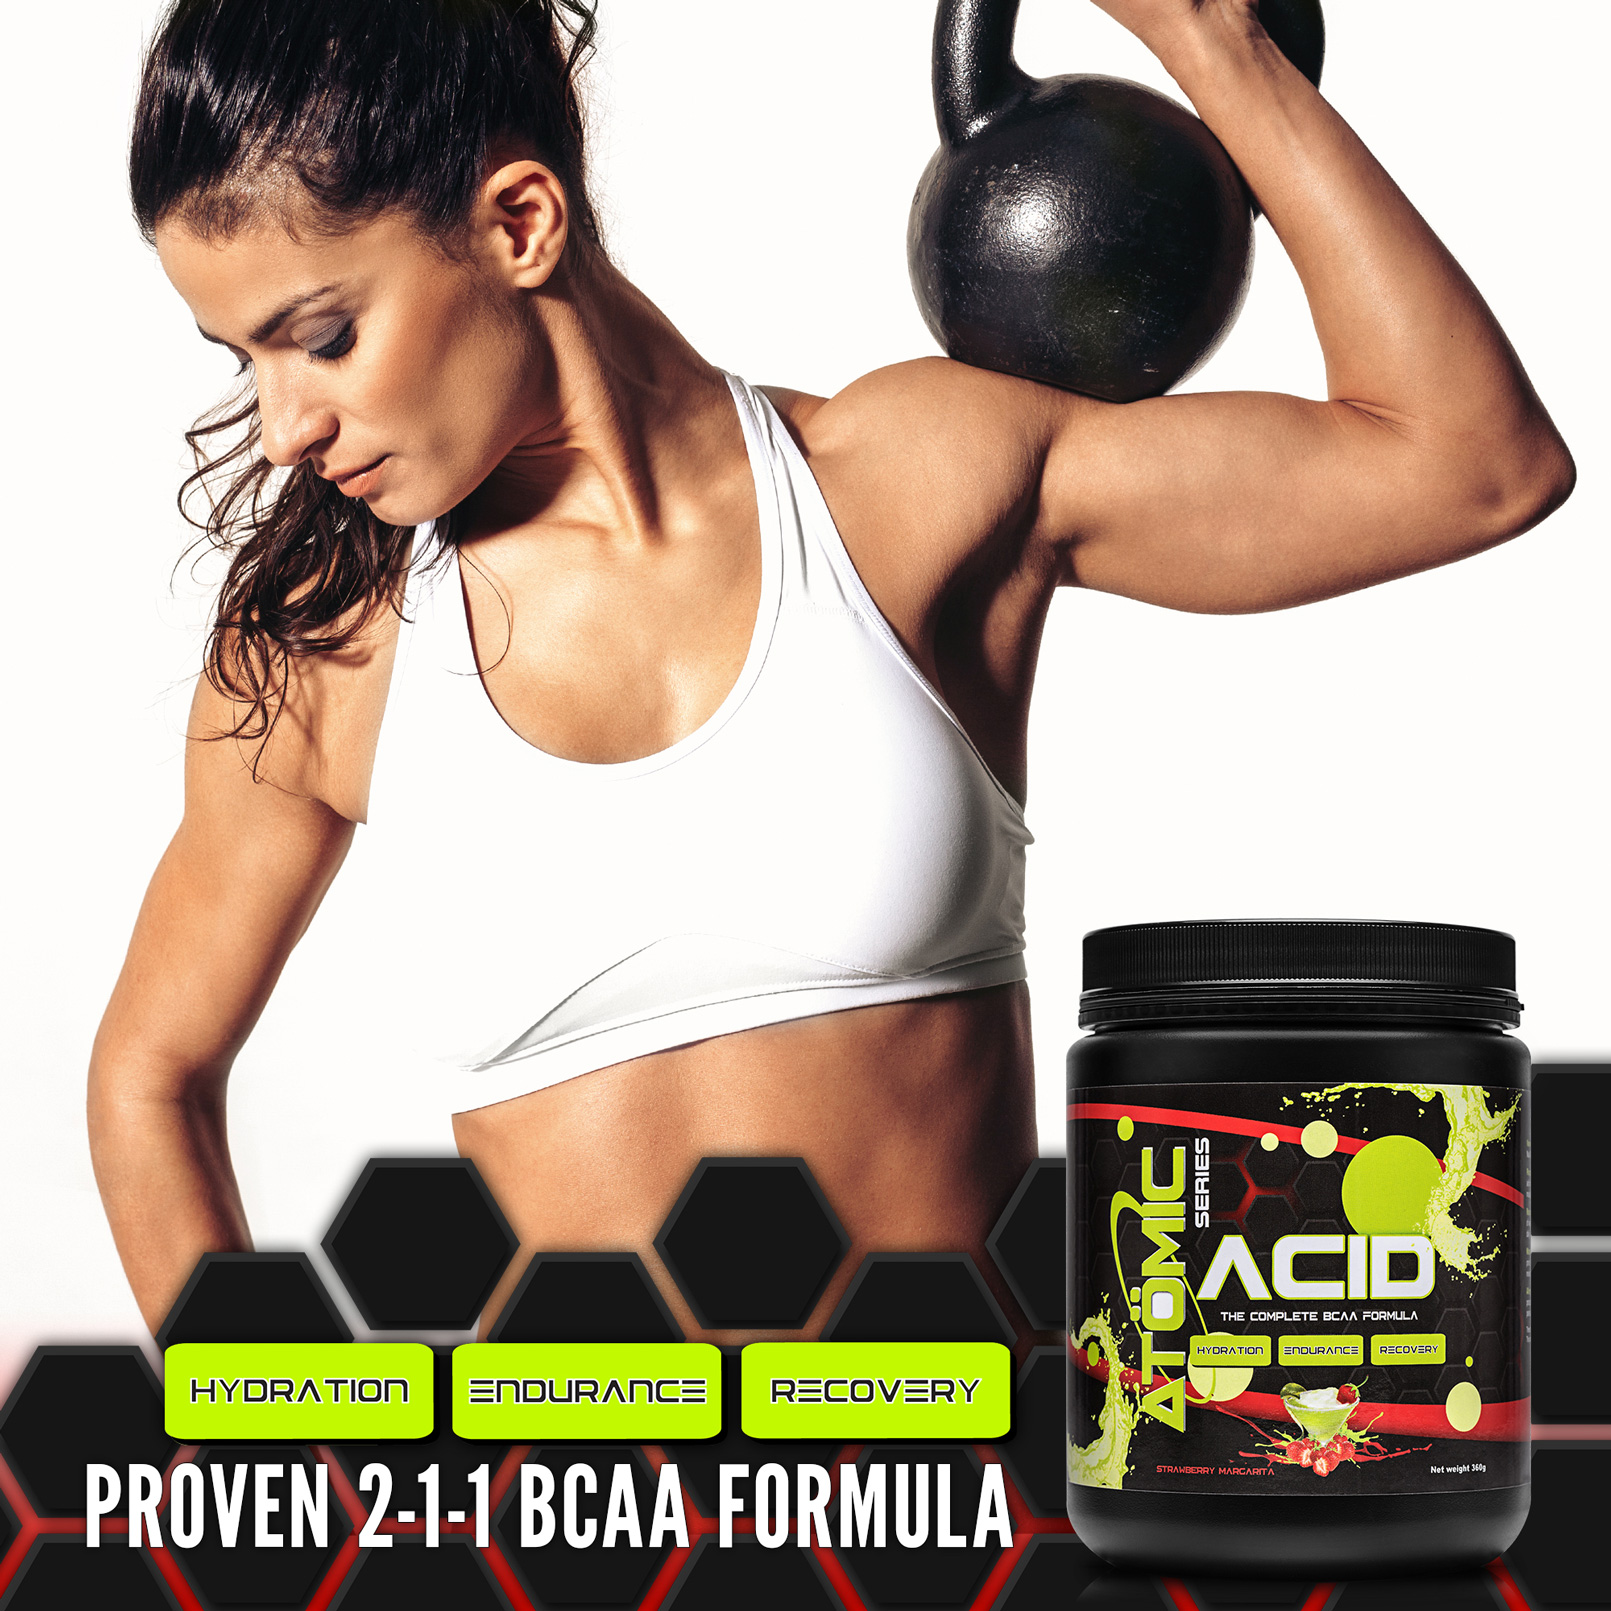 BCAA Female - Proven 2-1-1-Ratio